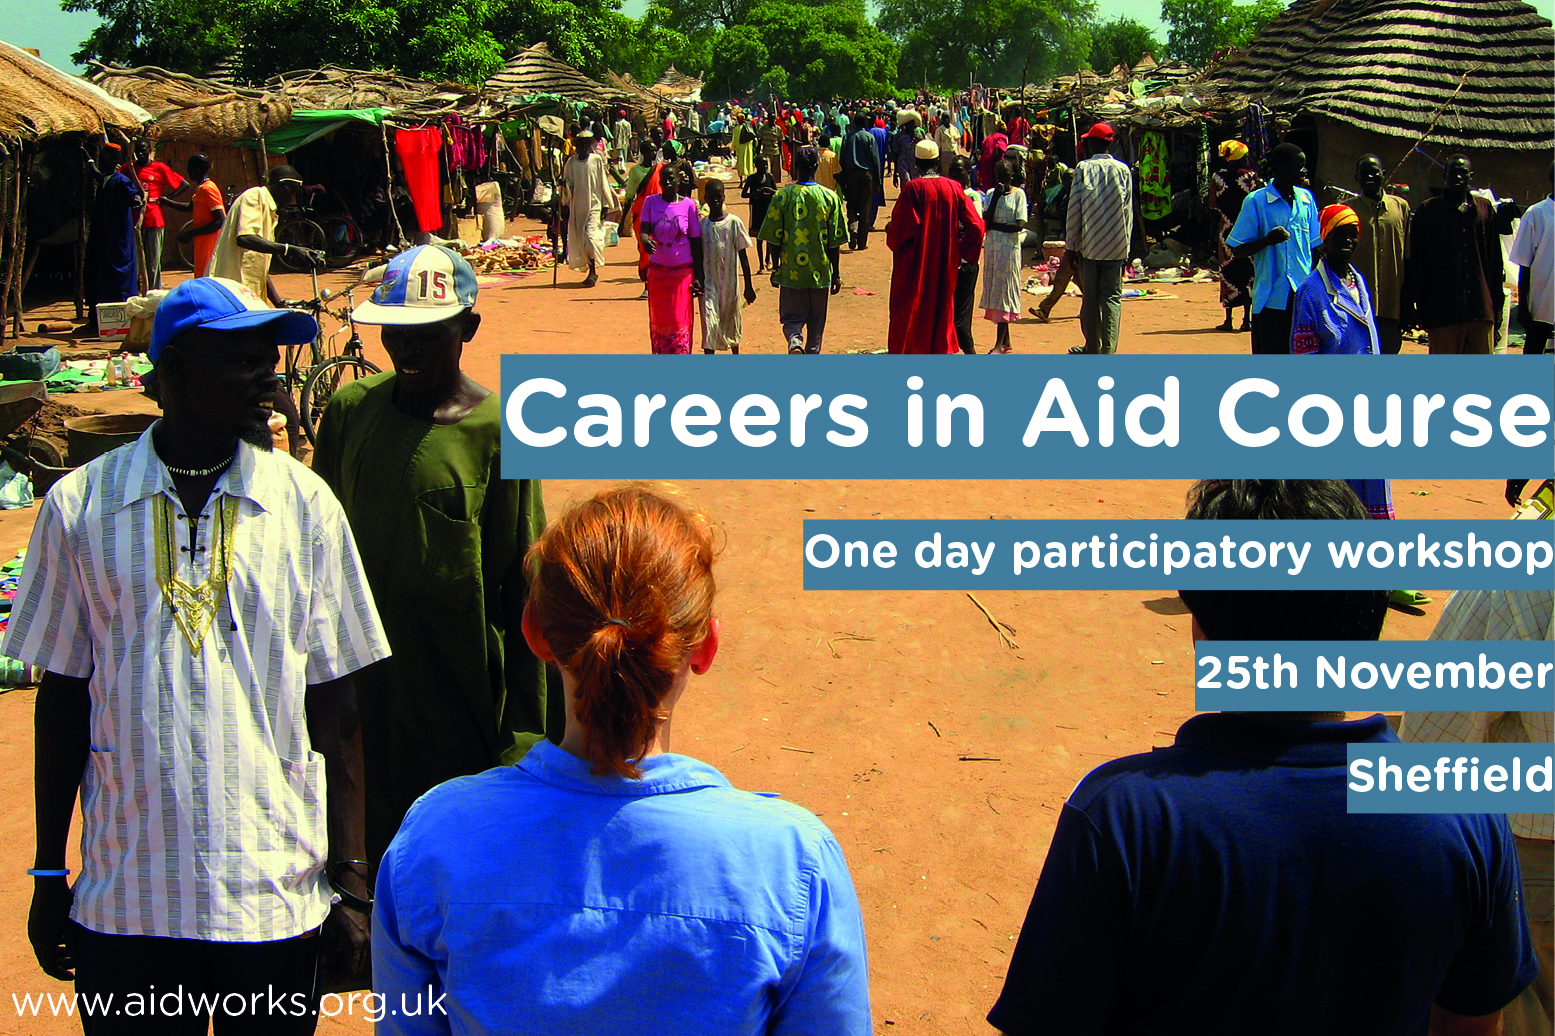 'Career in Aid' – one day participatory workshop